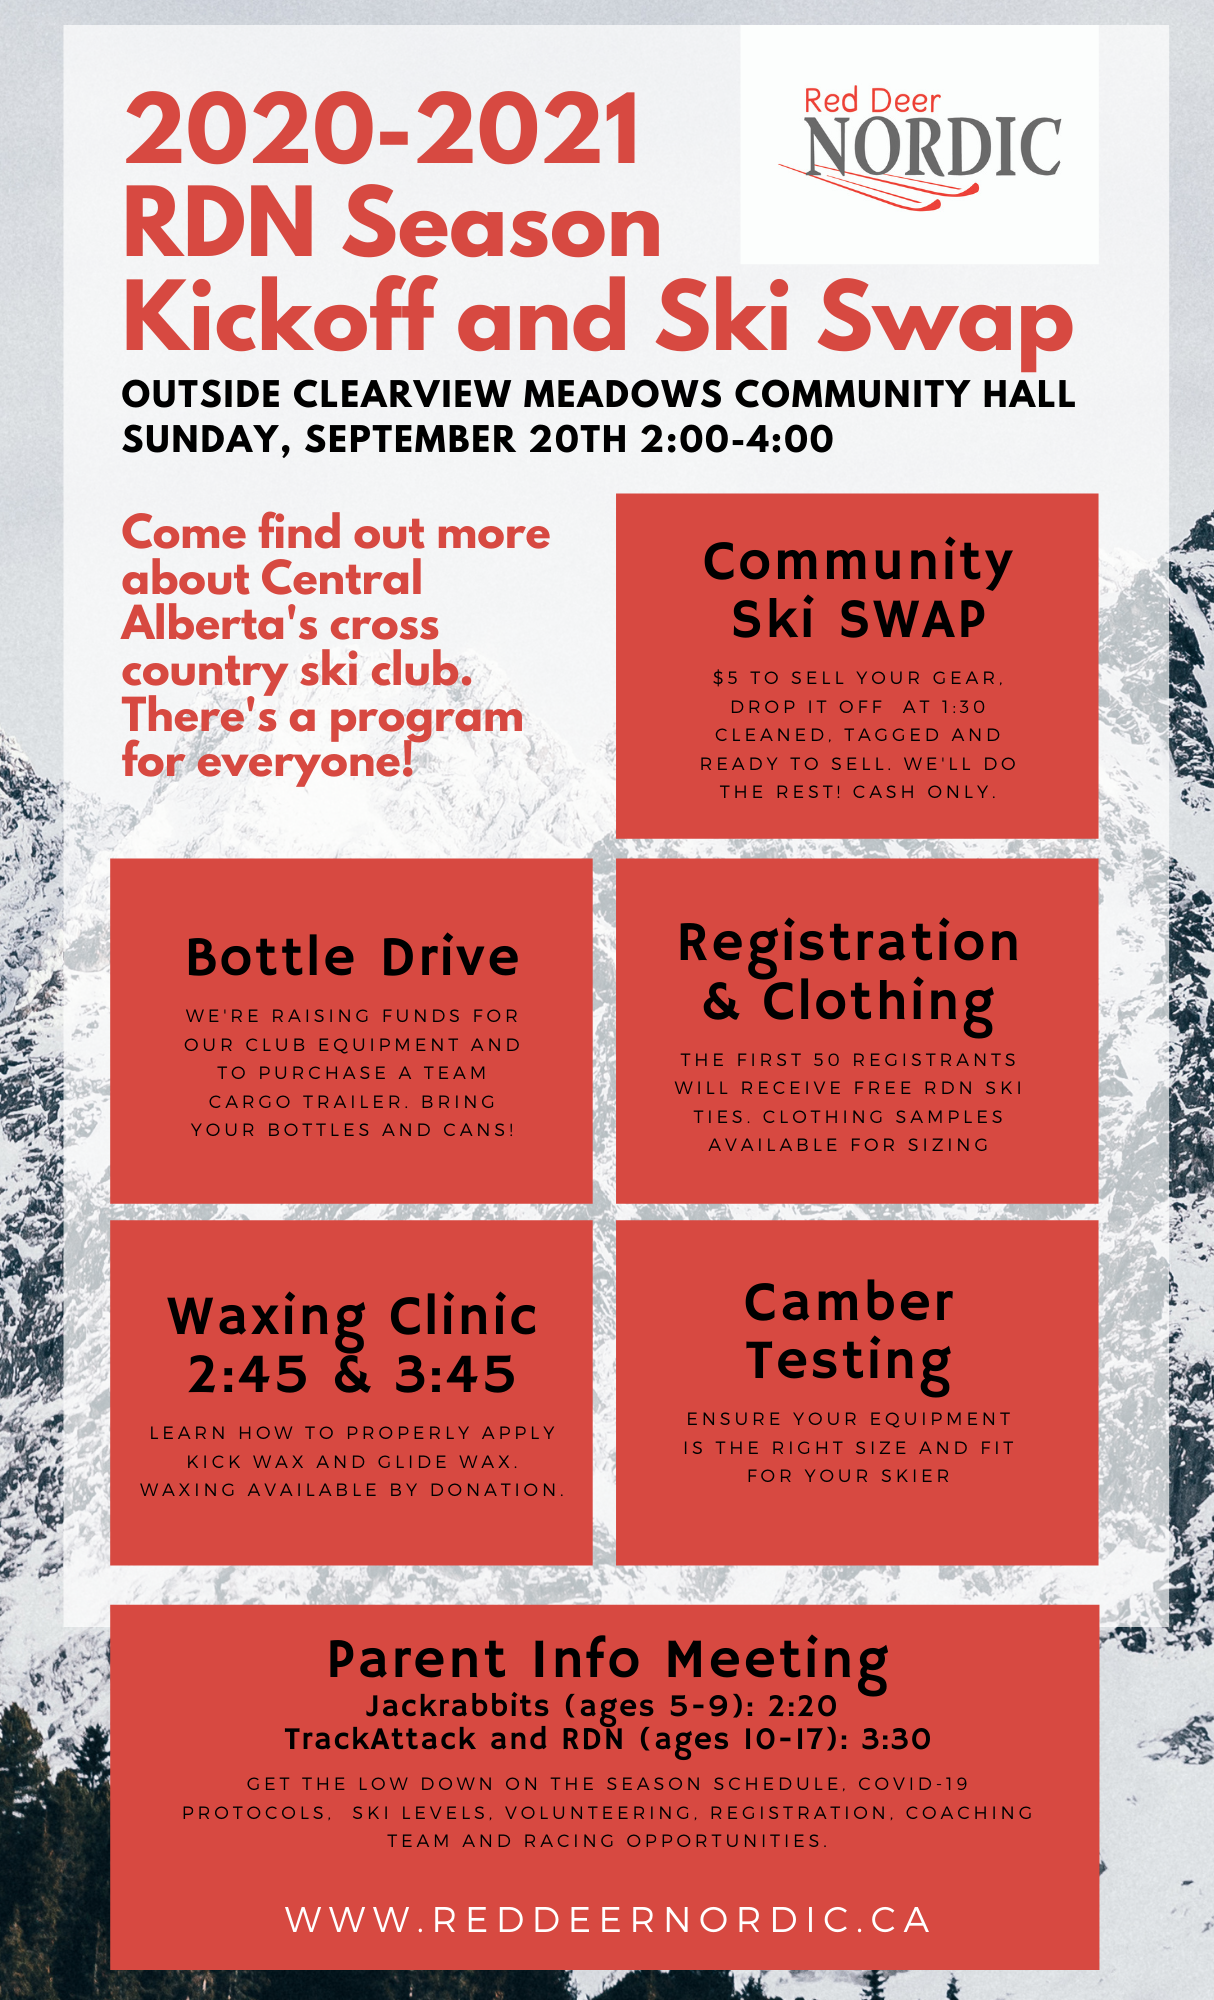 Red Deer Nordic Community Ski Swap and Kickoff